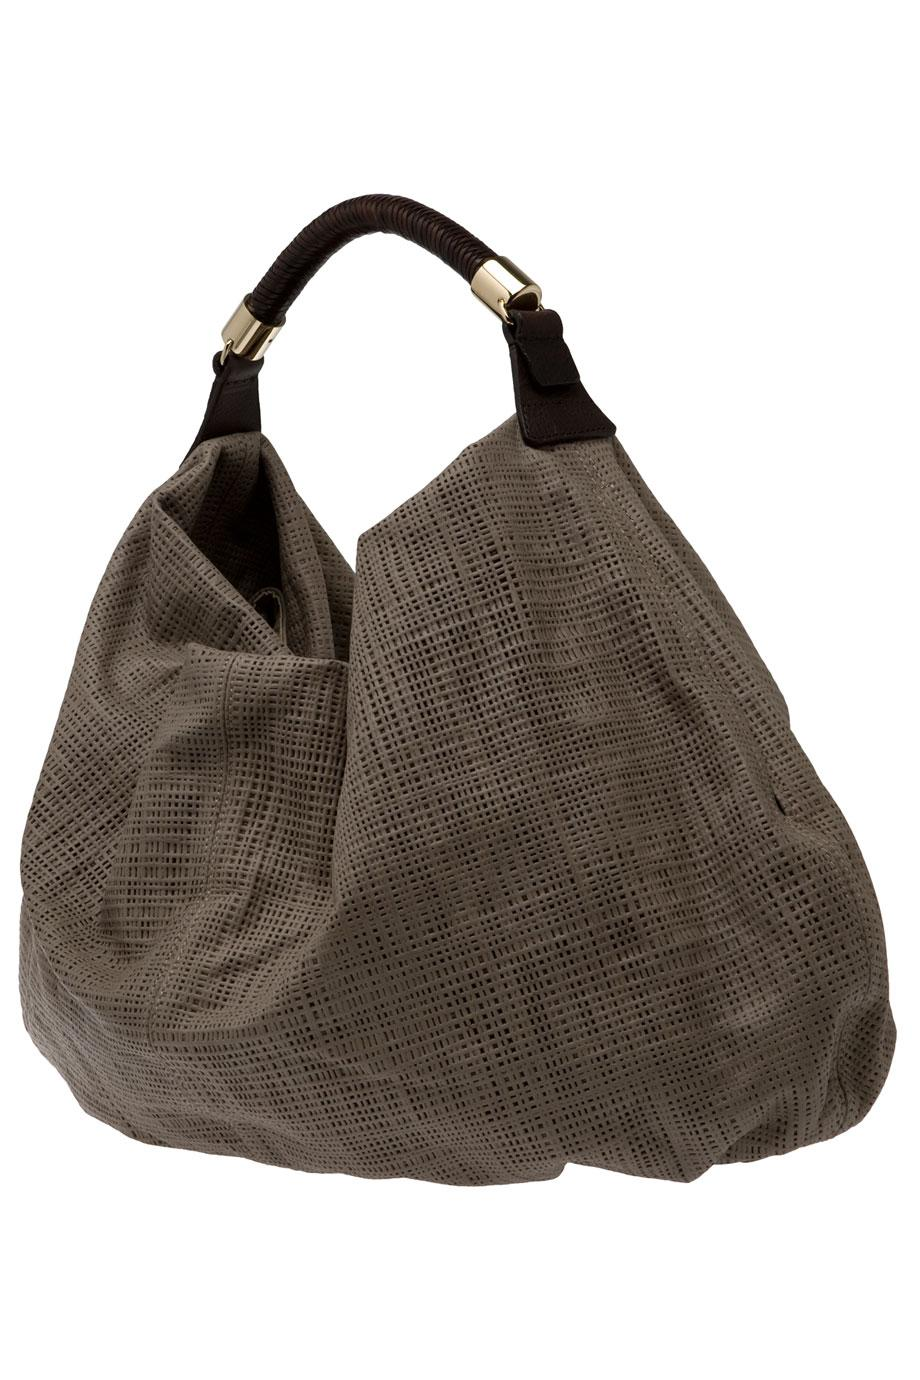 f8d095179e Lyst - Pauric Sweeney Large Slouchy Hobo Bag in Green